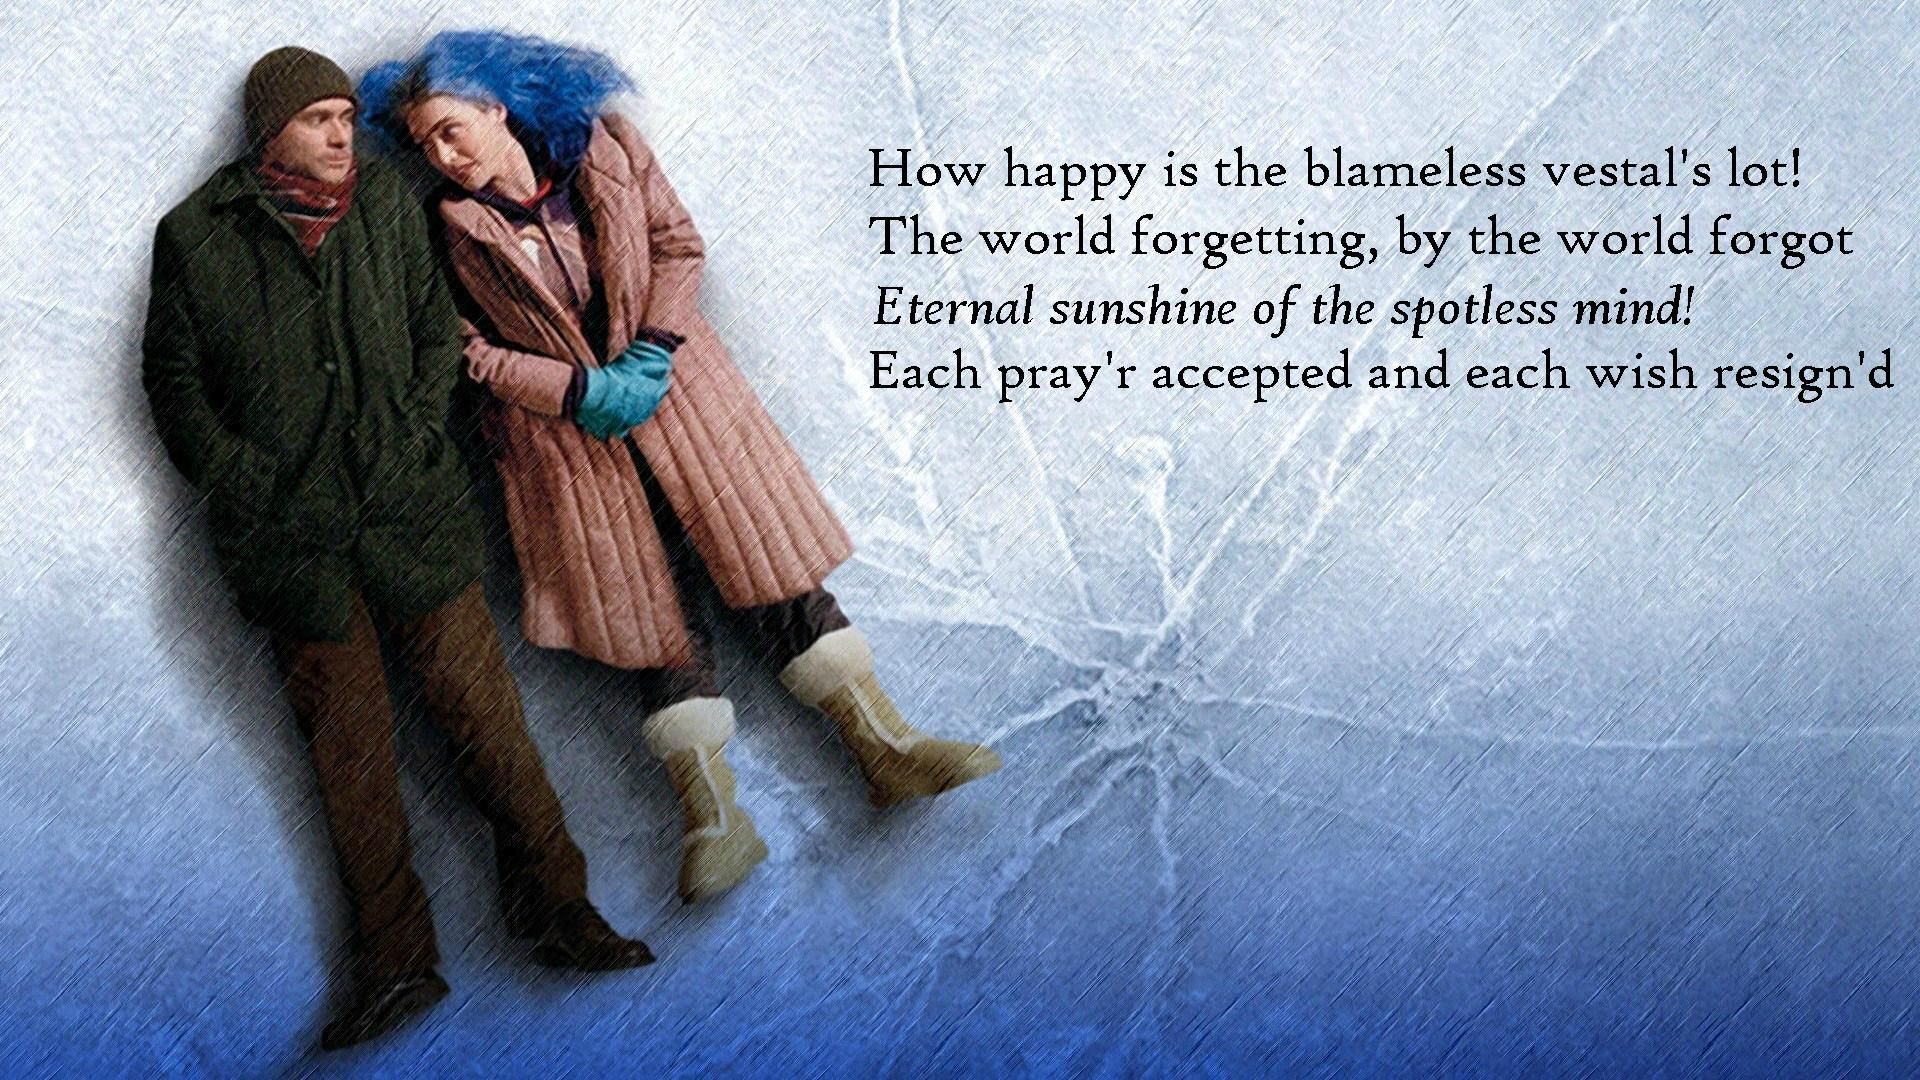 Eternal Sunshine Of The Spotless Mind 1920x1080 Eternal Sunshine Of The Spotless Mind Eternal Sunshine Eternity